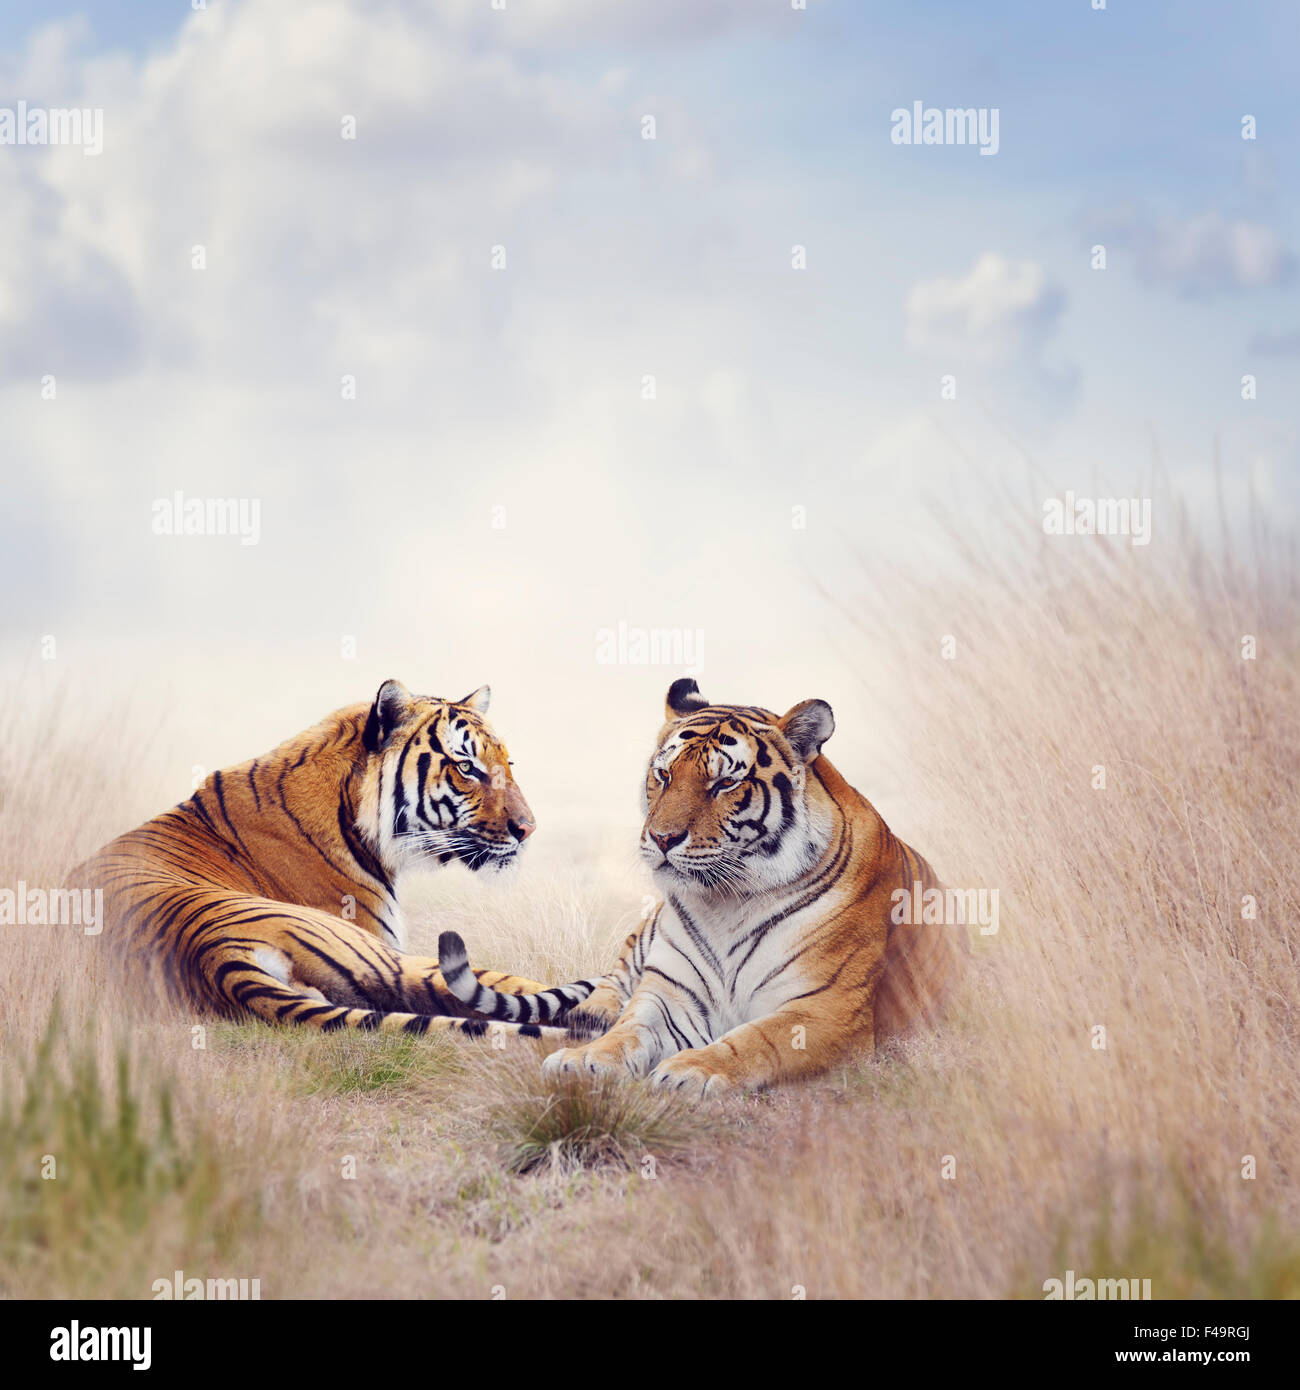 Two Tigers Resting in a Tall Grass - Stock Image